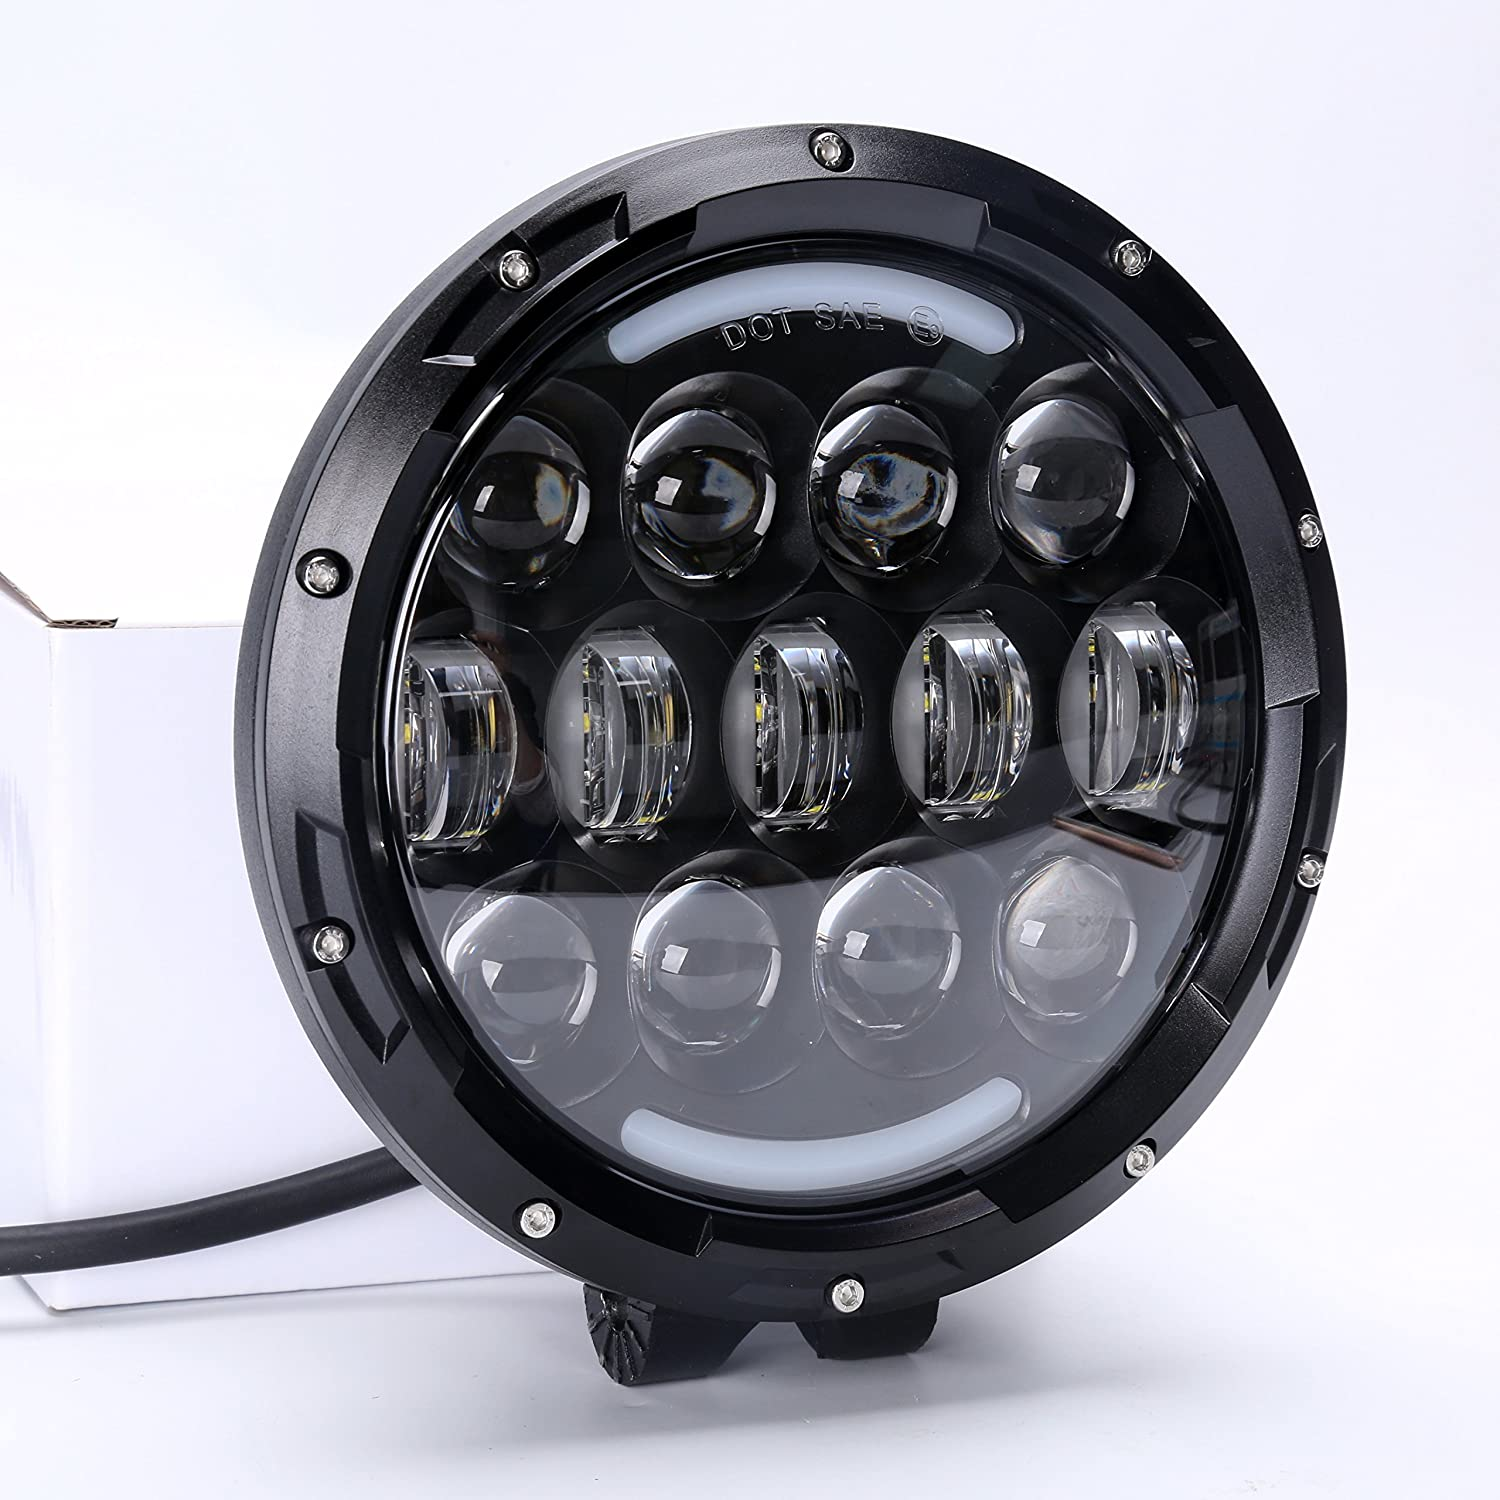 Construction Hunters Jeep Truck SUV Brightest Driving Lights 105W 2Pcs 7 Inch Round LED High//Low Beam Work Light Off Road Driving Light Waterproof for Offroader ATV Car Camping